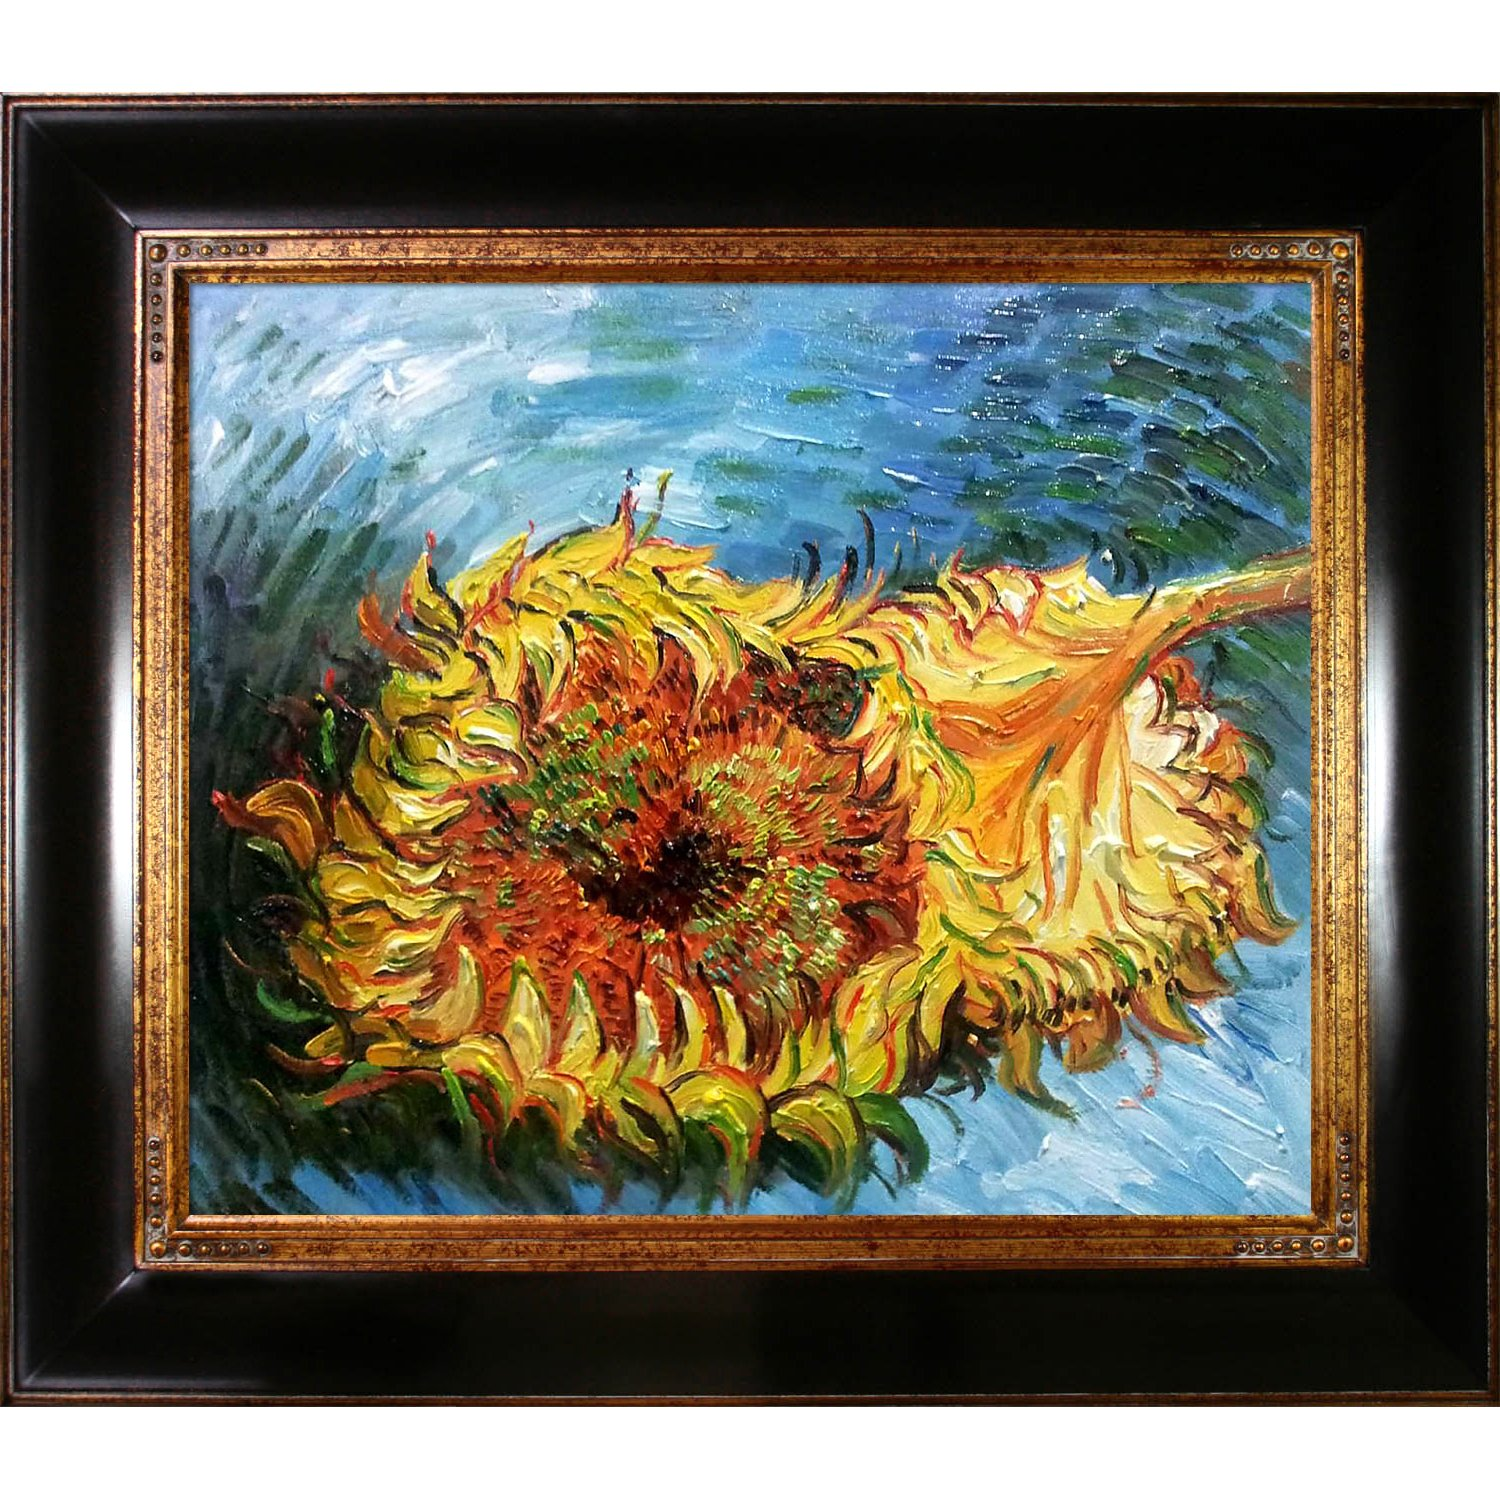 Dark Stained Wood with Gold Trim overstockArt Two Cut Sunflowers with Opulent Frame Painting